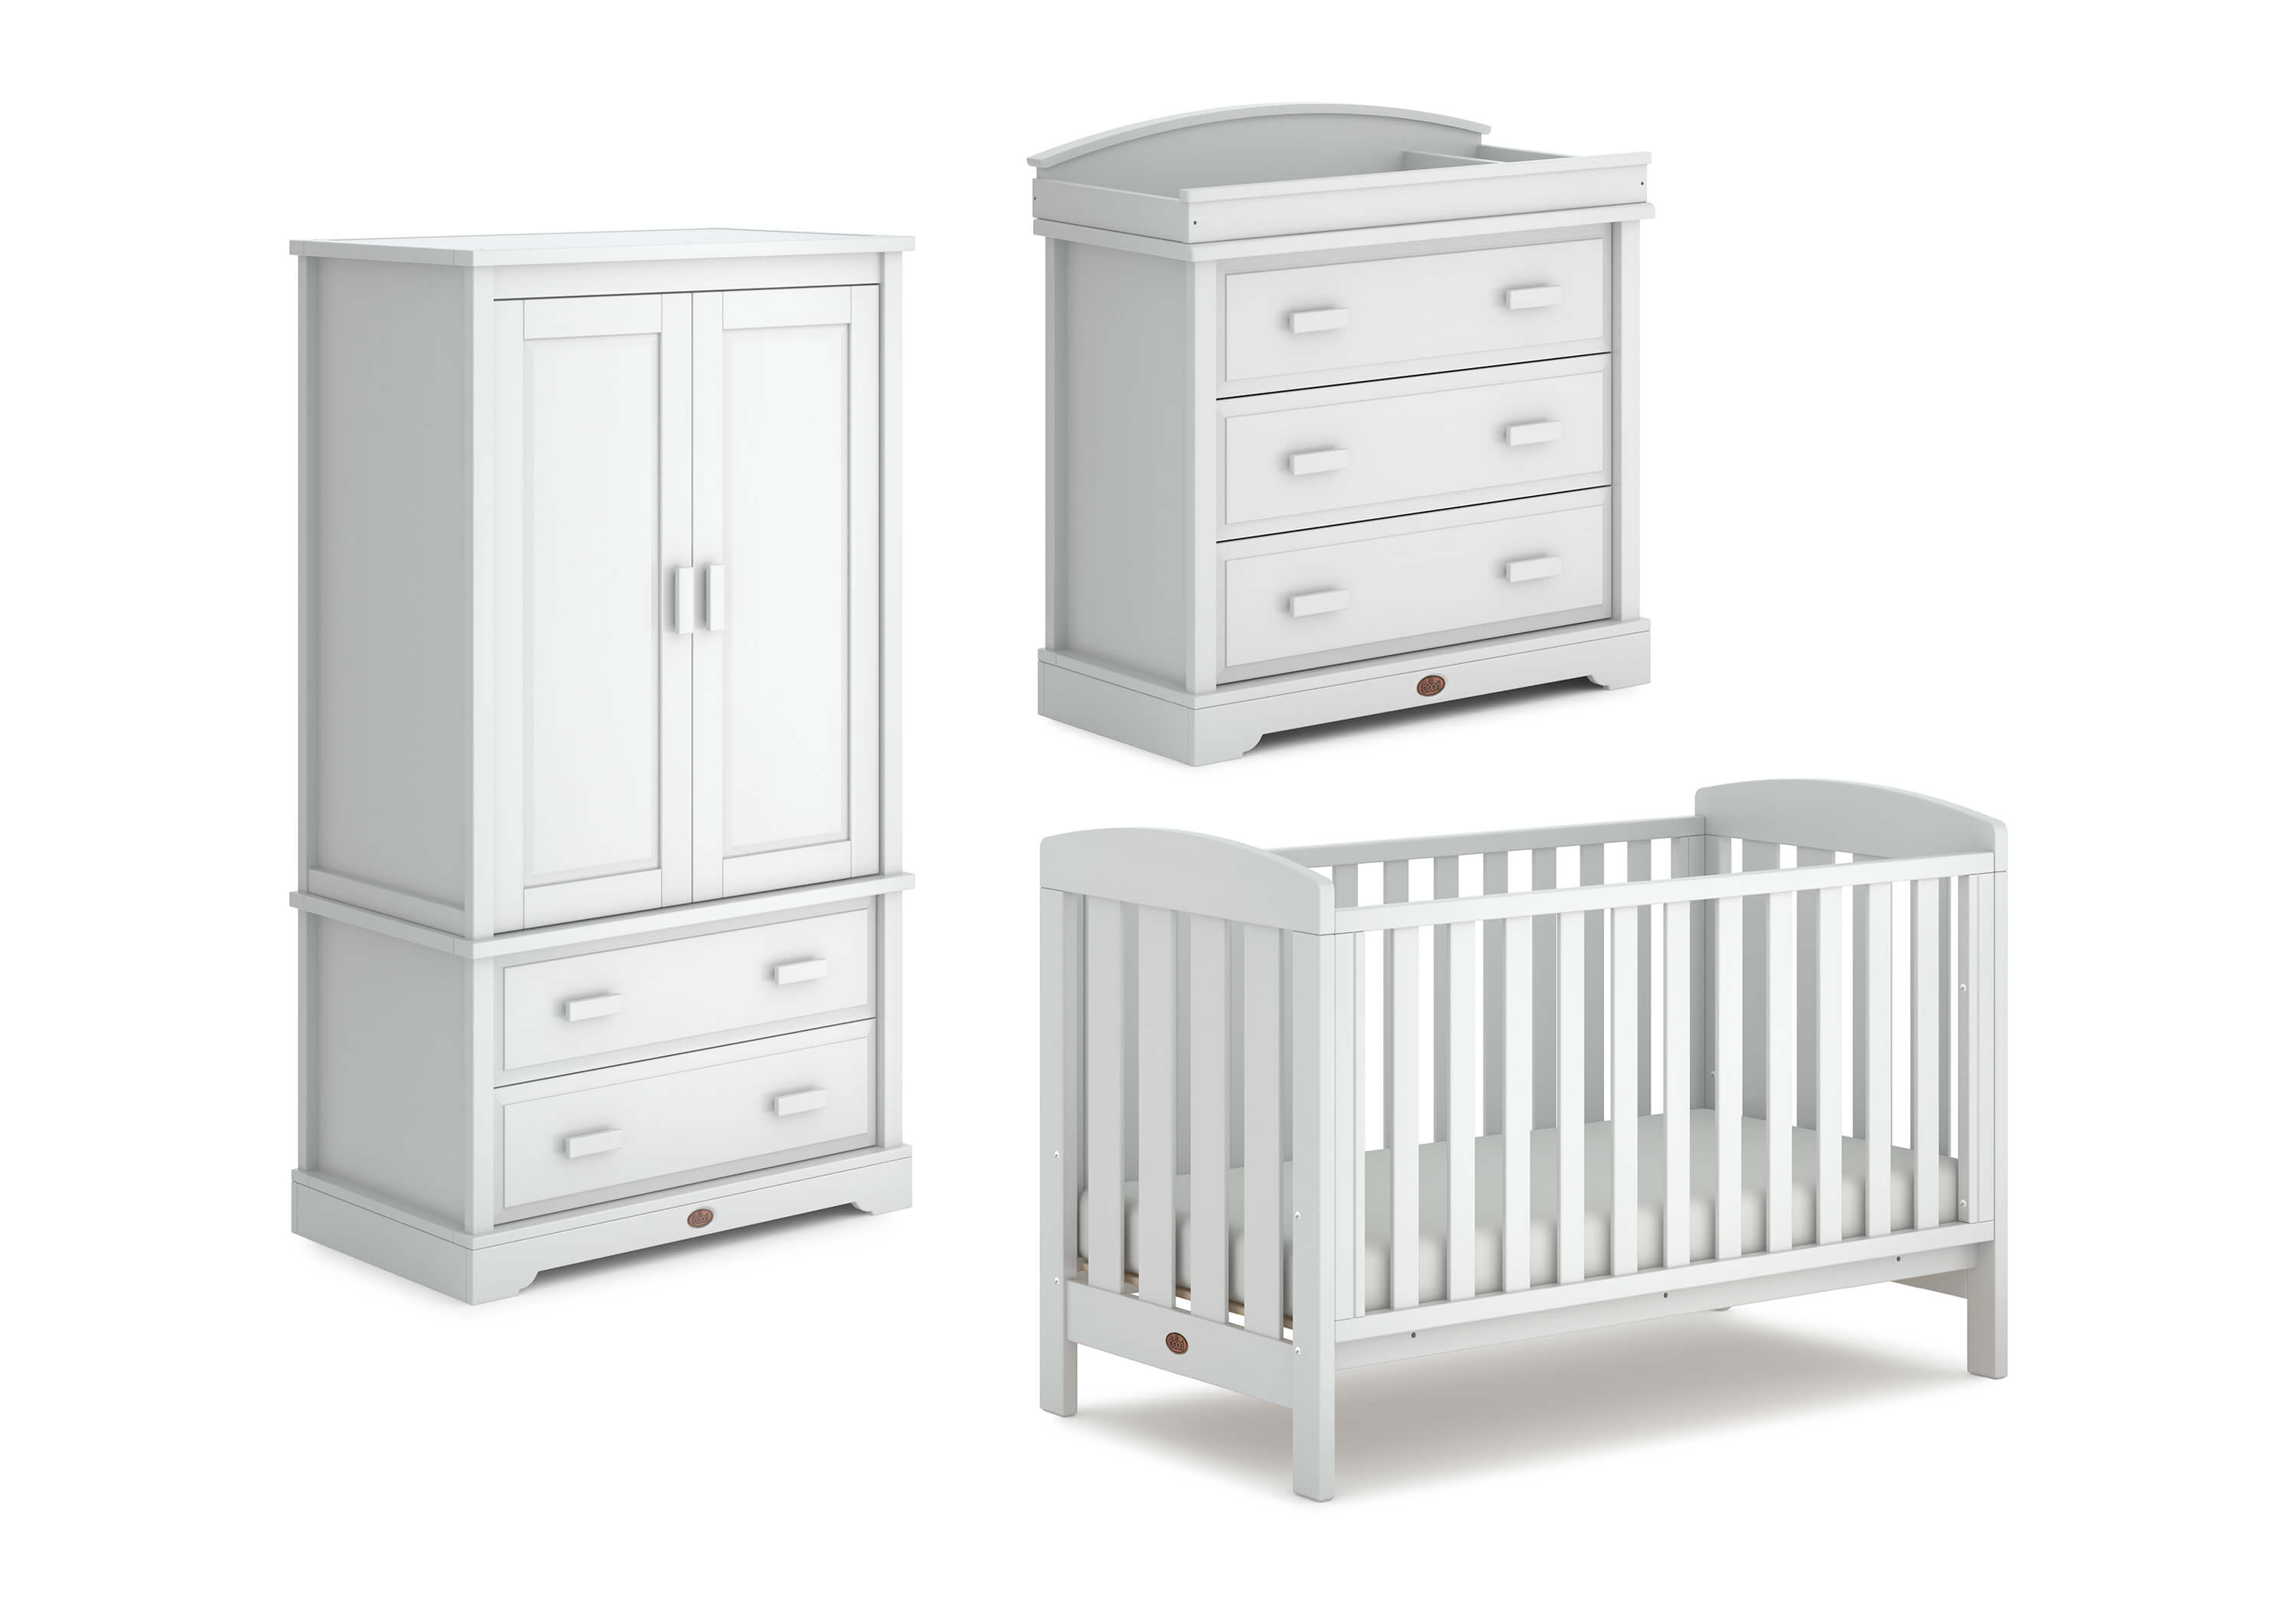 Alice 3 Piece Room Set With Drawer